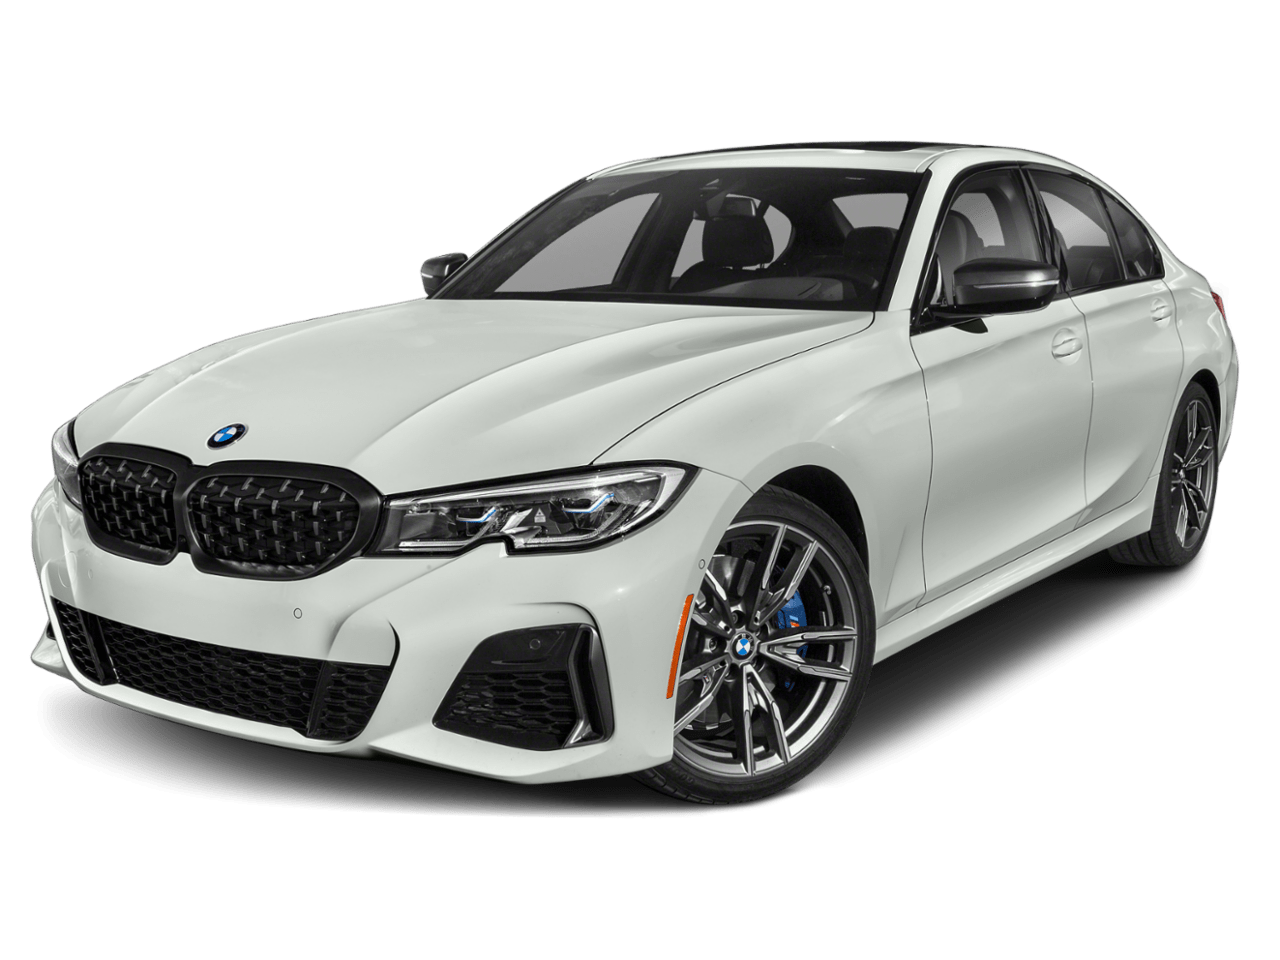 Small photo of the M340i xDrive trim